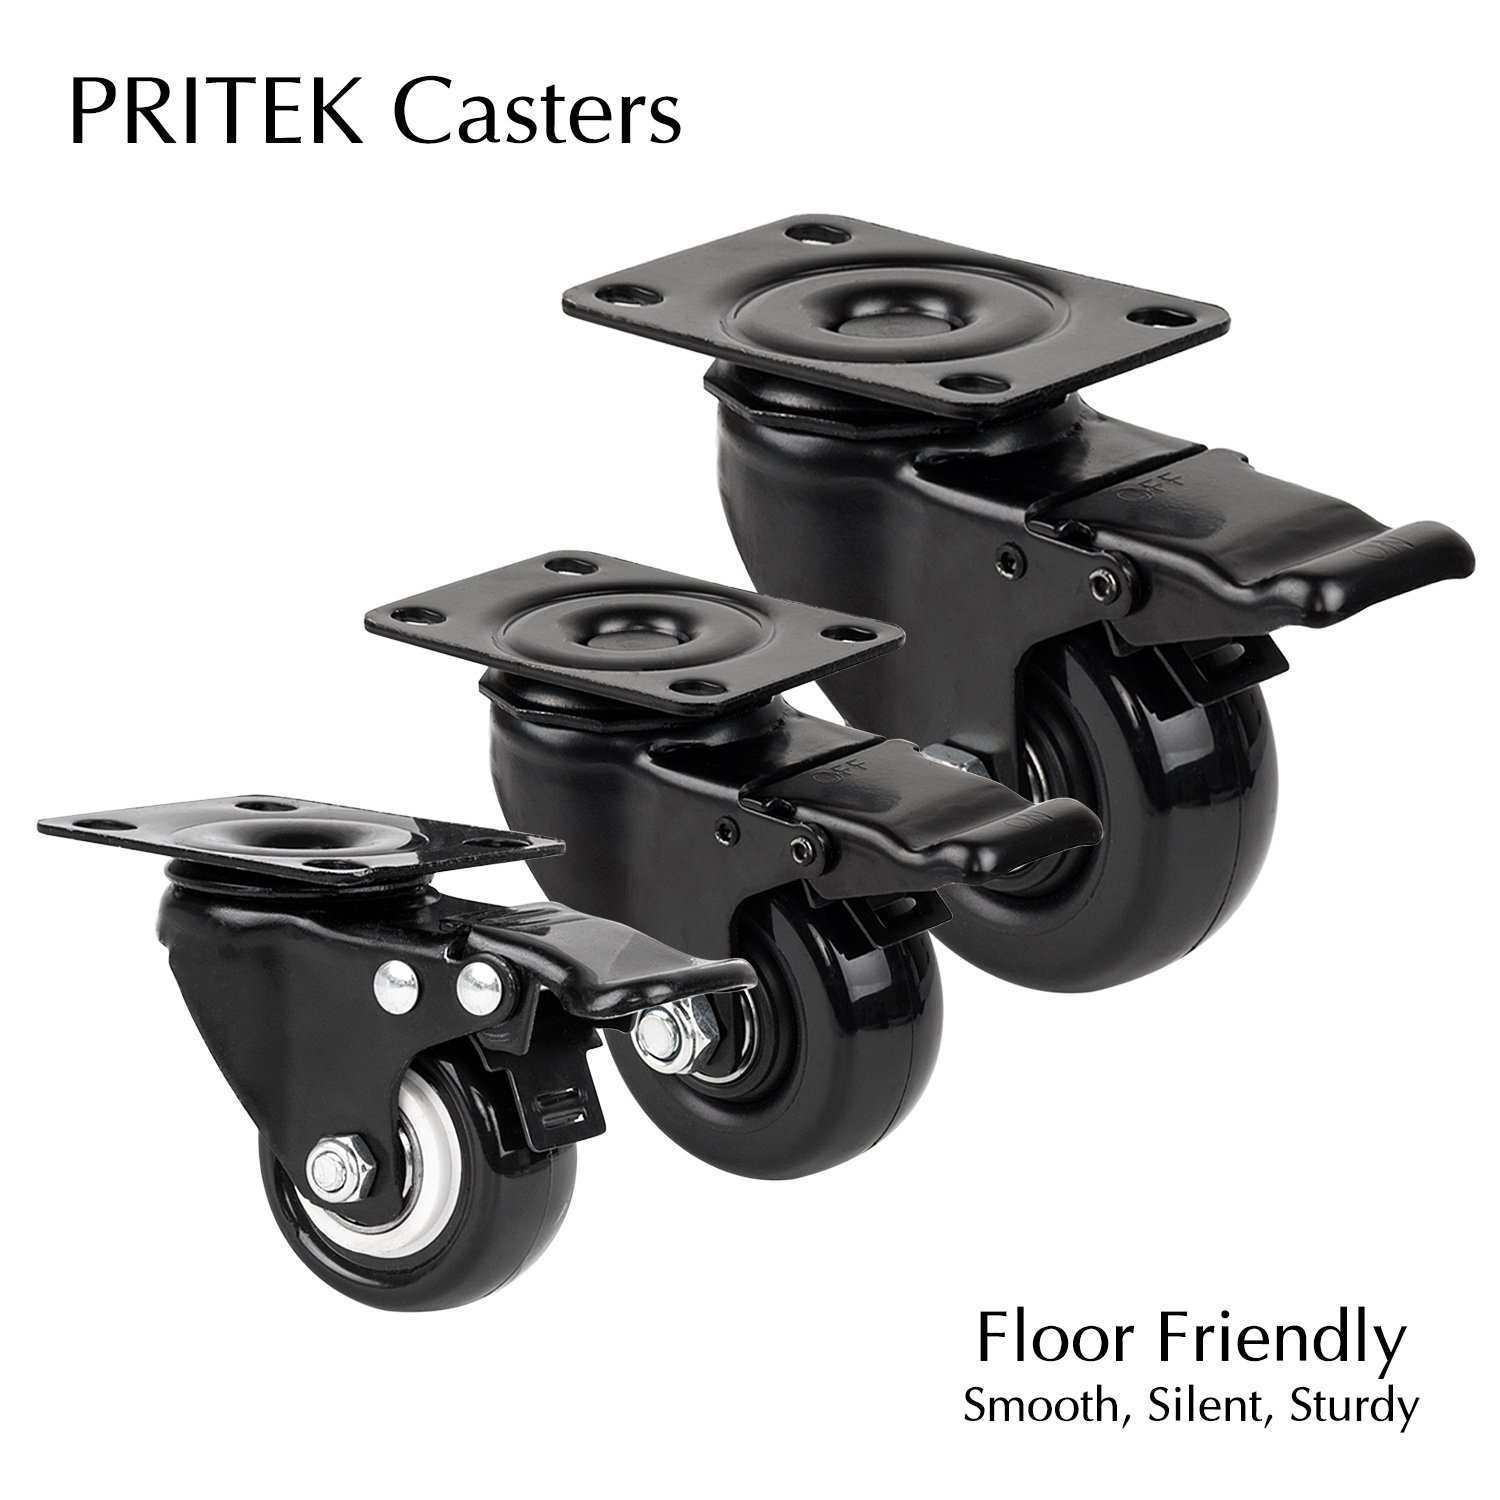 4'' Swivel Plate Caster Wheels, PRITEK Heavy Duty Metal Caster Wheels Lock the Top Plate and the Wheels Replacement for Industrial Trailer or Large Home Furniture (bearing 250lbs each, set of 4) by PRITEK (Image #7)